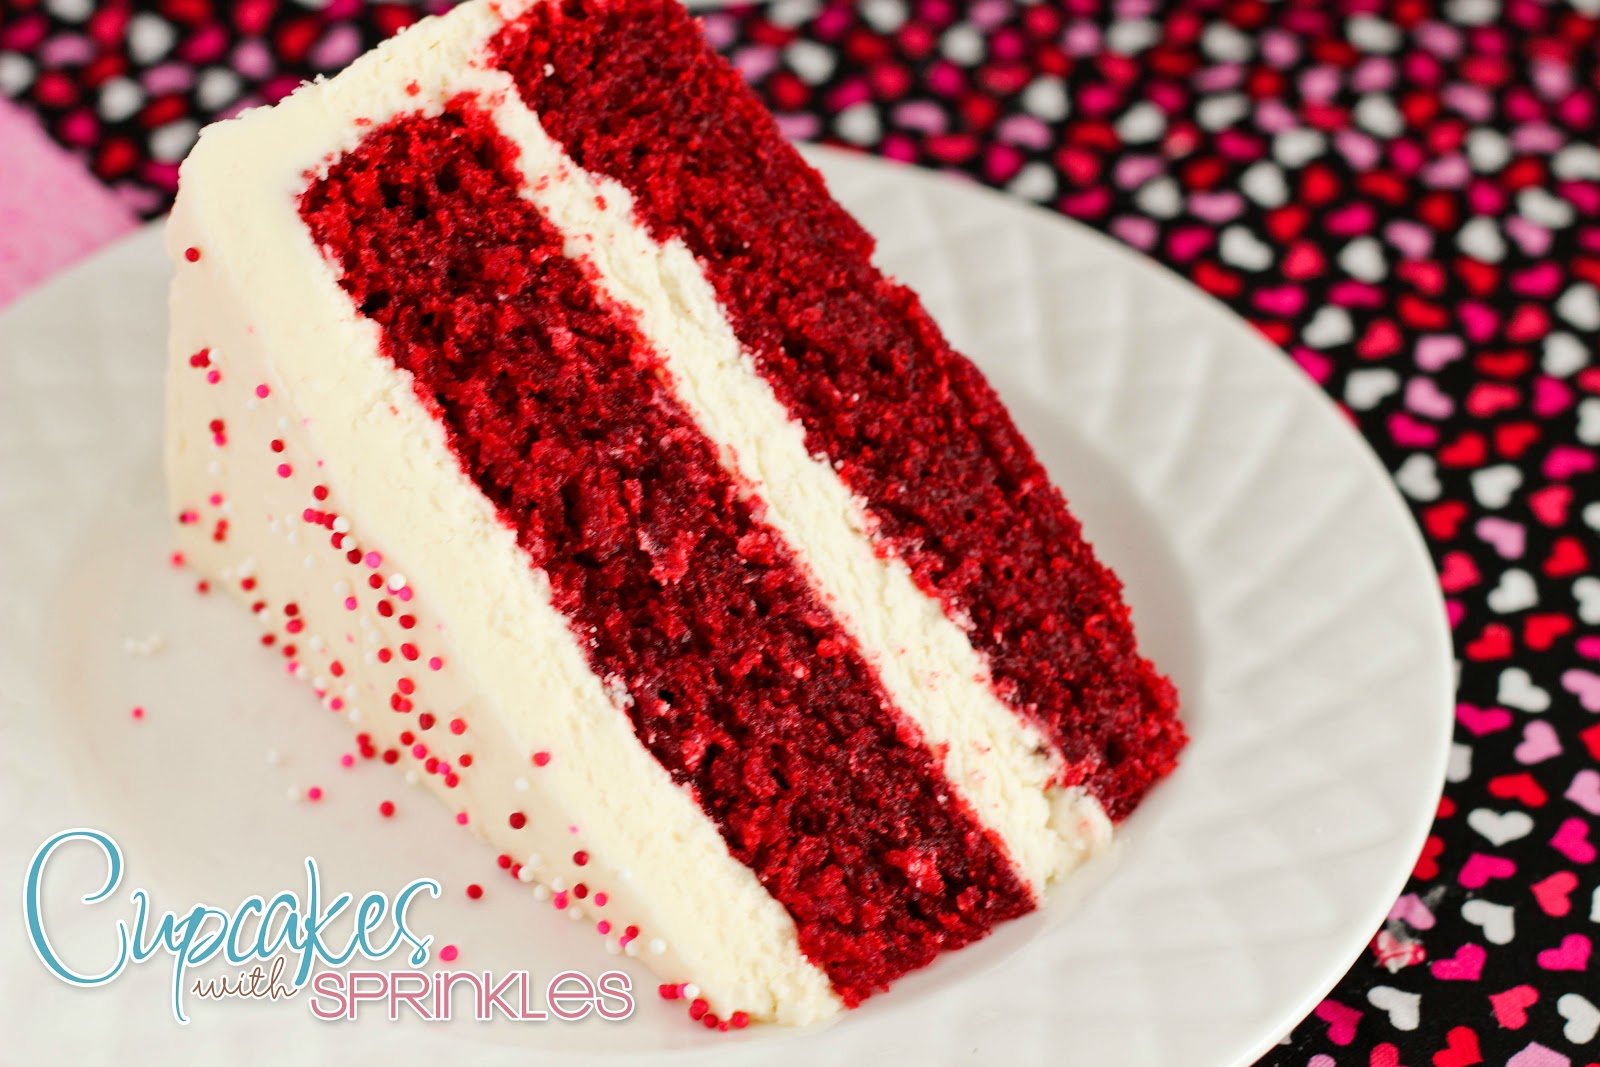 Cupcakes with Sprinkles: Red Velvet Cake